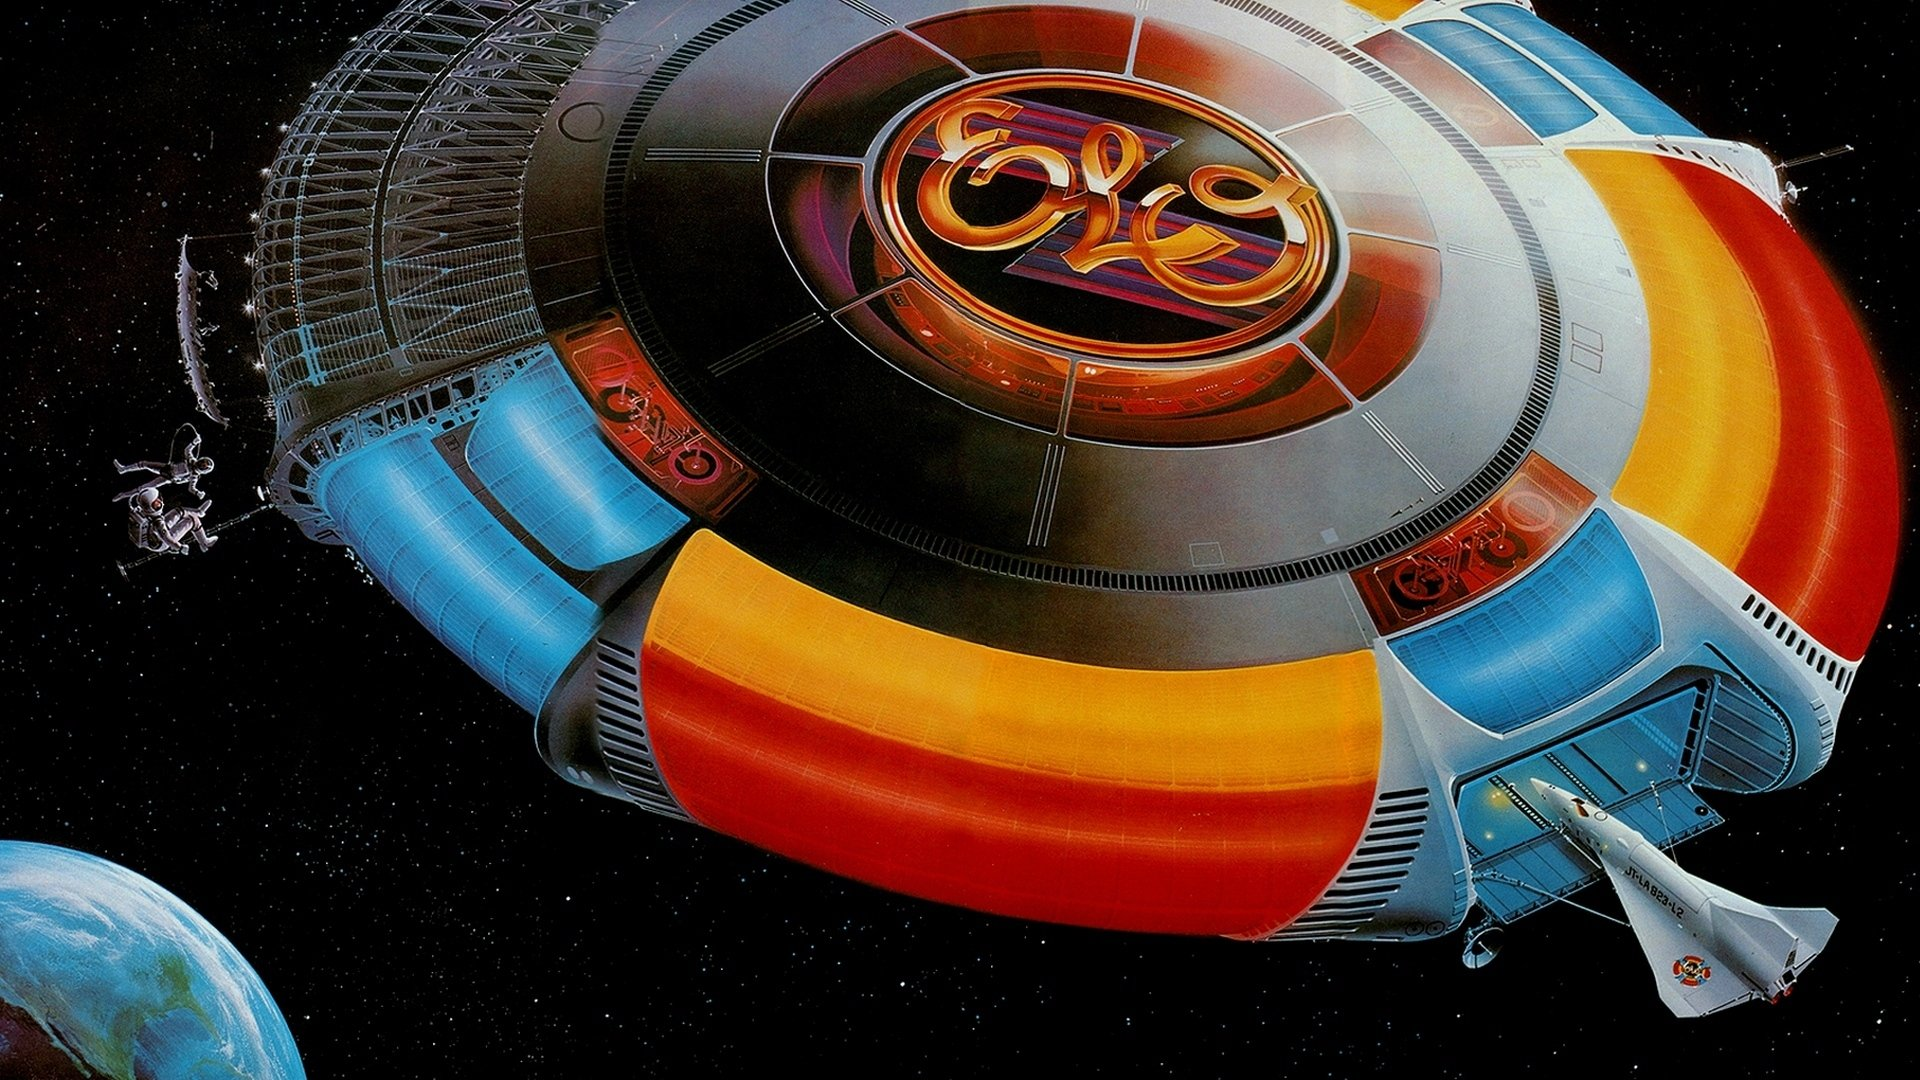 Electric Light Orchestra Wallpaper Electric light orchestra 1920x1080